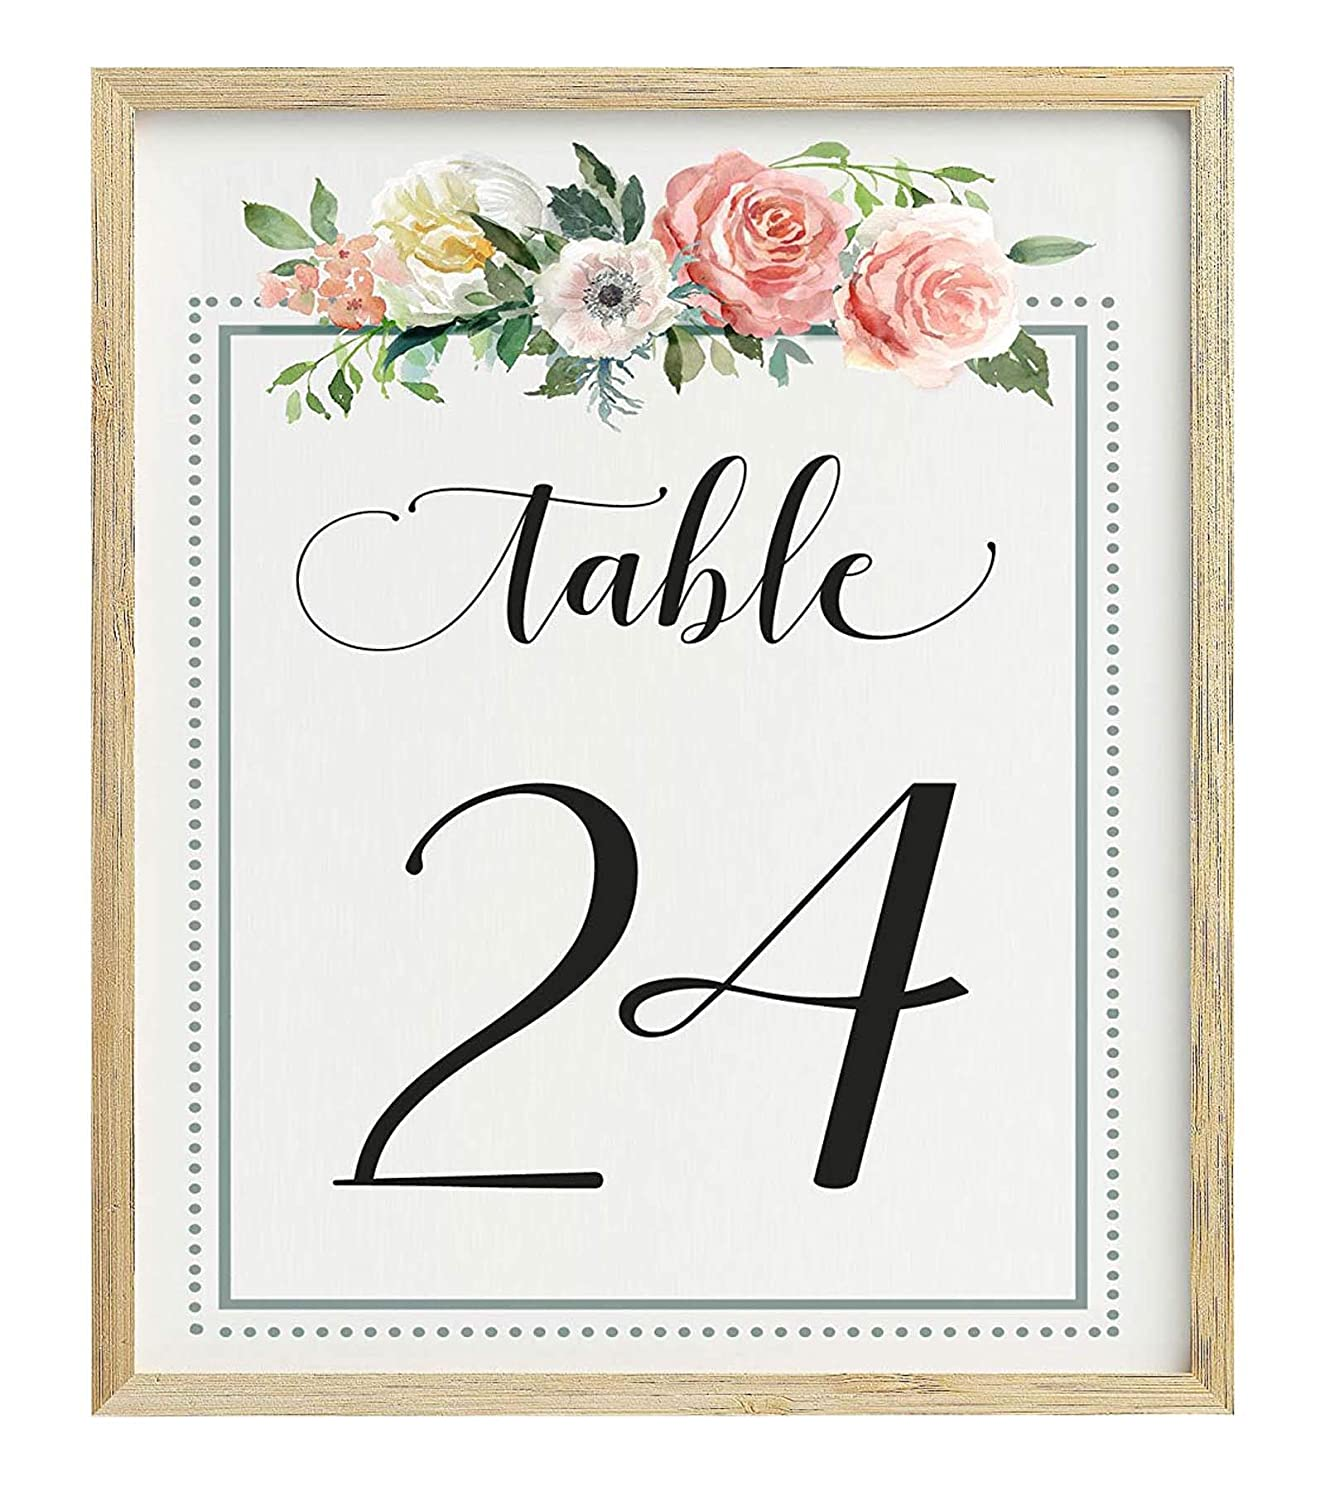 Table Numbers Wedding.Darling Souvenir Calligraphy 1 30 Floral Table Numbers Wedding Reception Decor Table Cards 4x6 Inches